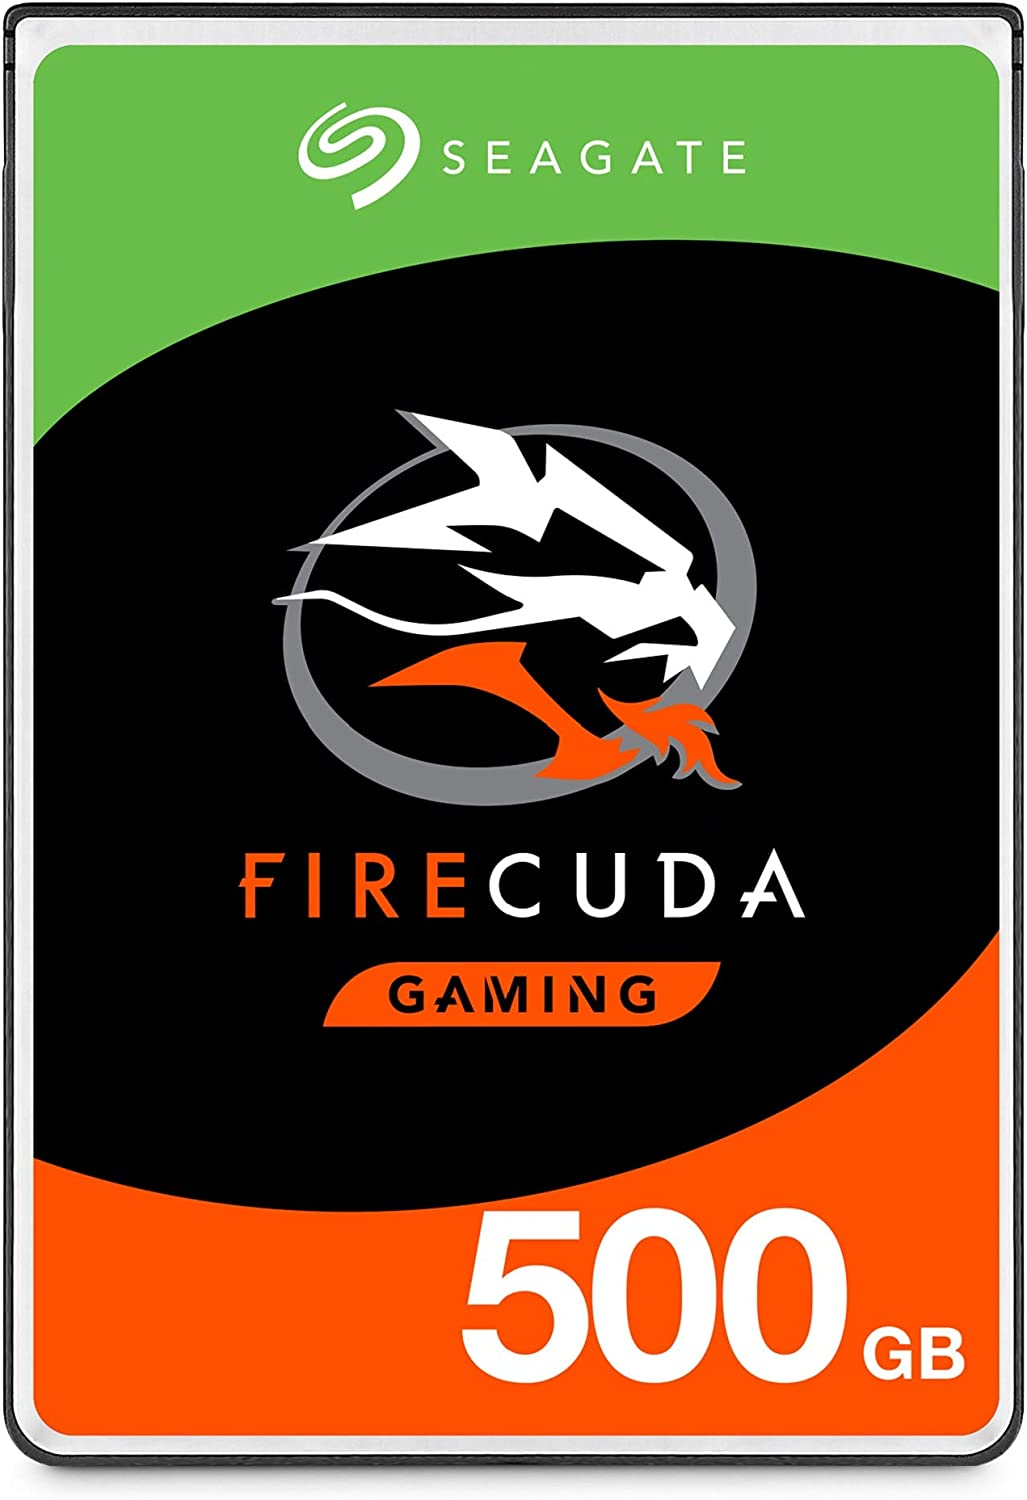 Seagate FireCuda 500GB Solid State Hybrid Drive Performance SSHD – 2.5 Inch SATA 6Gb/s Flash Accelerated for Gaming PC Laptop